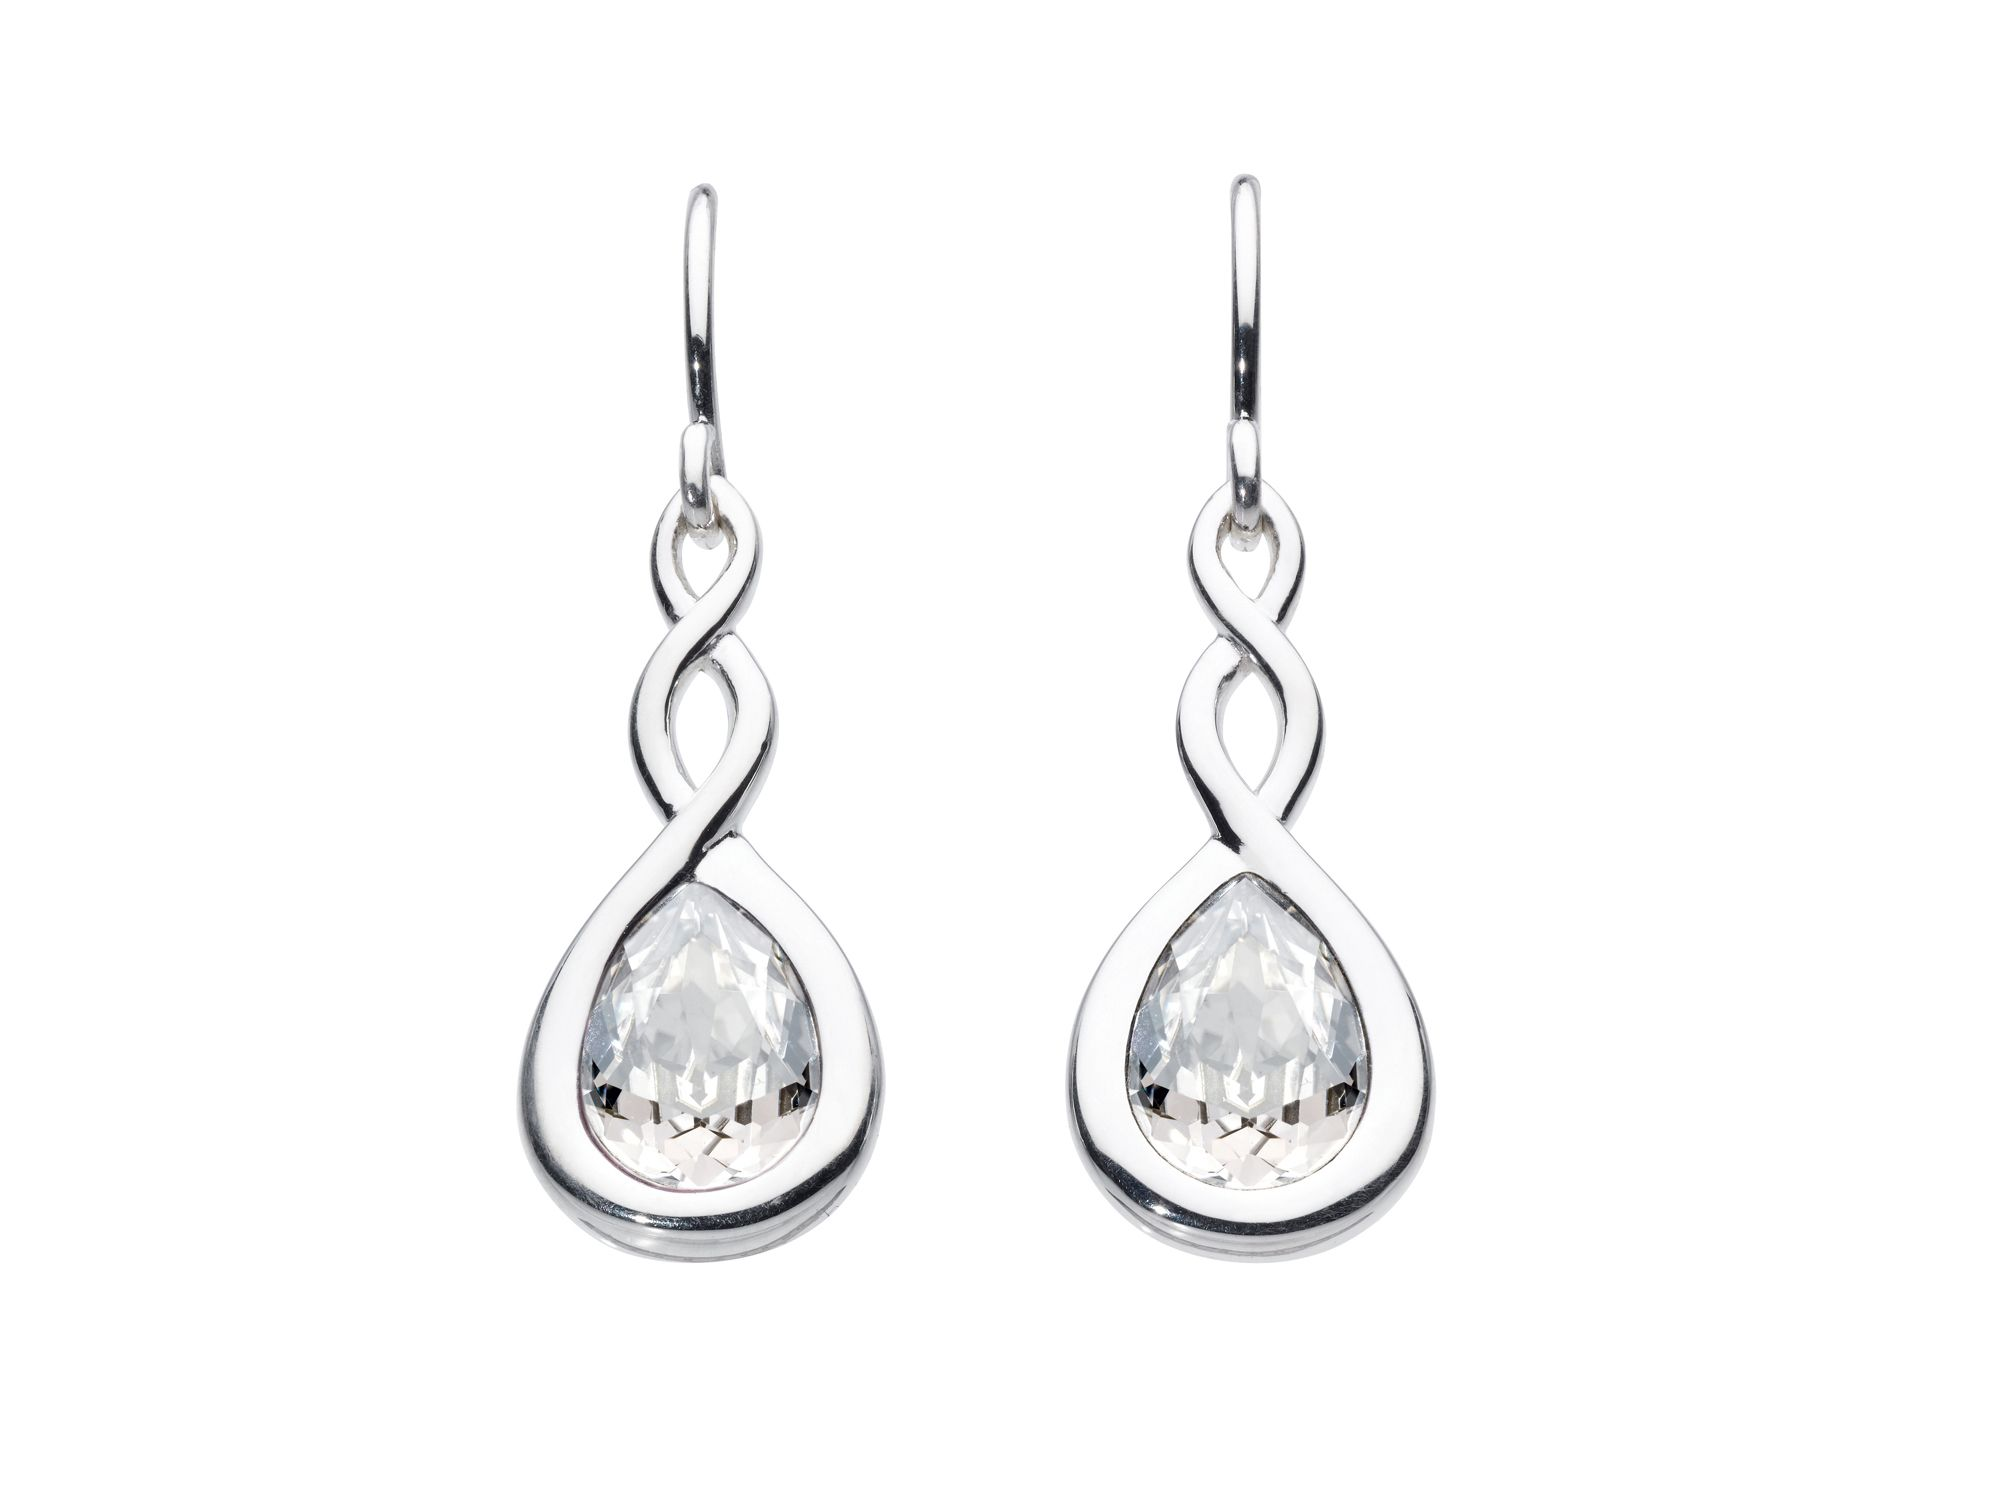 Crystal pear twist drops earrings